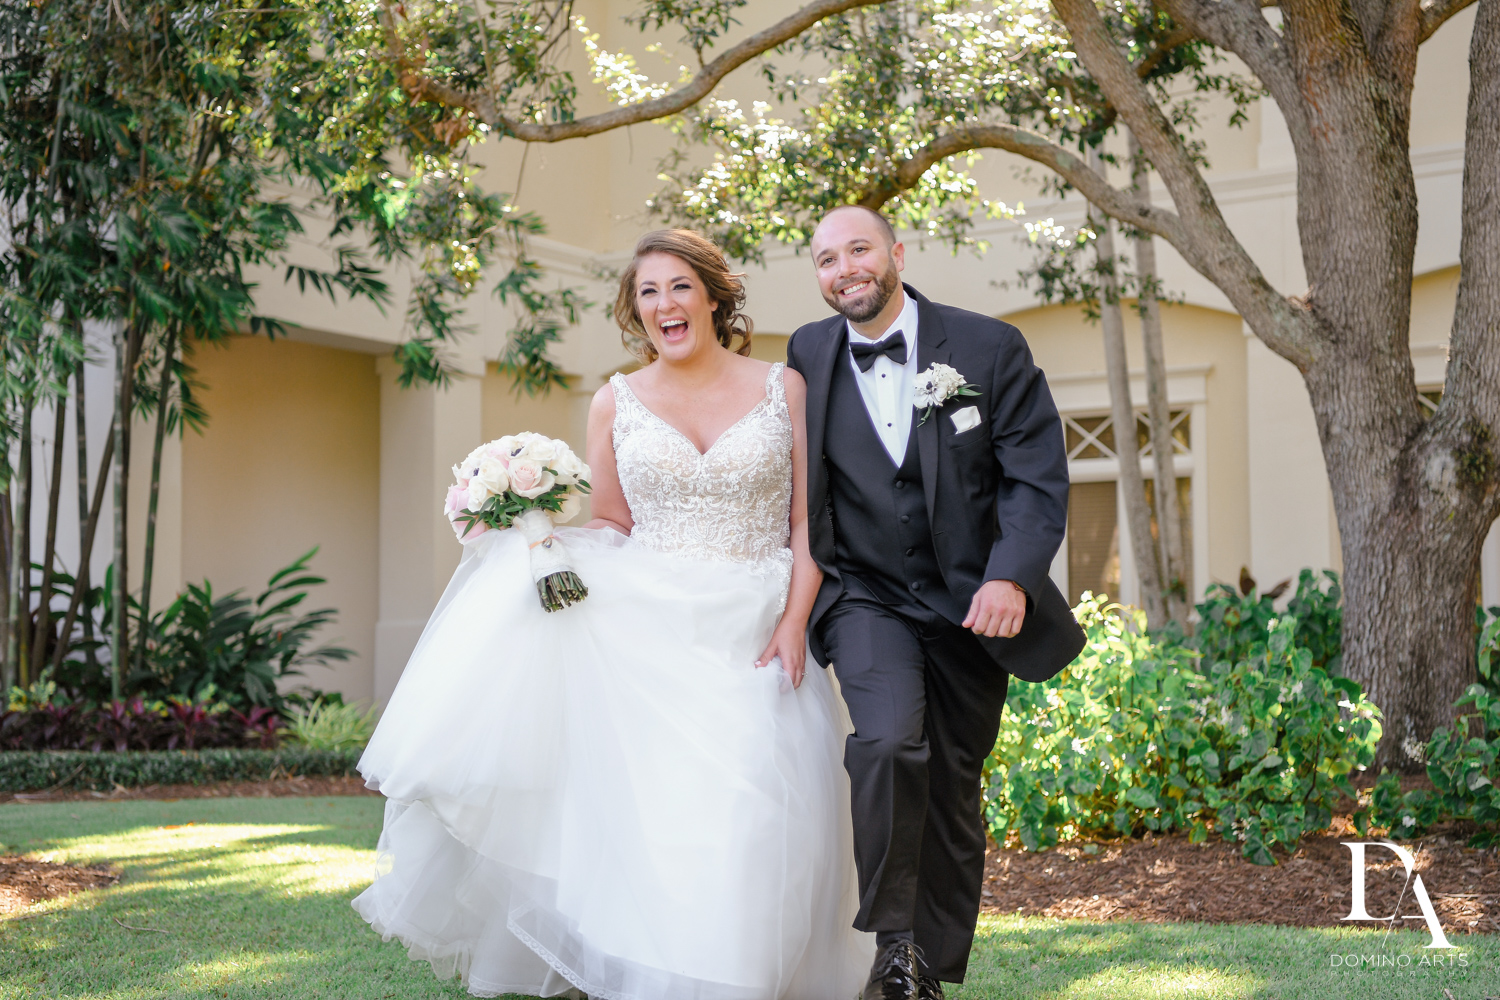 Candid photos at Romantic Outdoors Wedding at Woodfield Country Club in Boca Raton, Florida